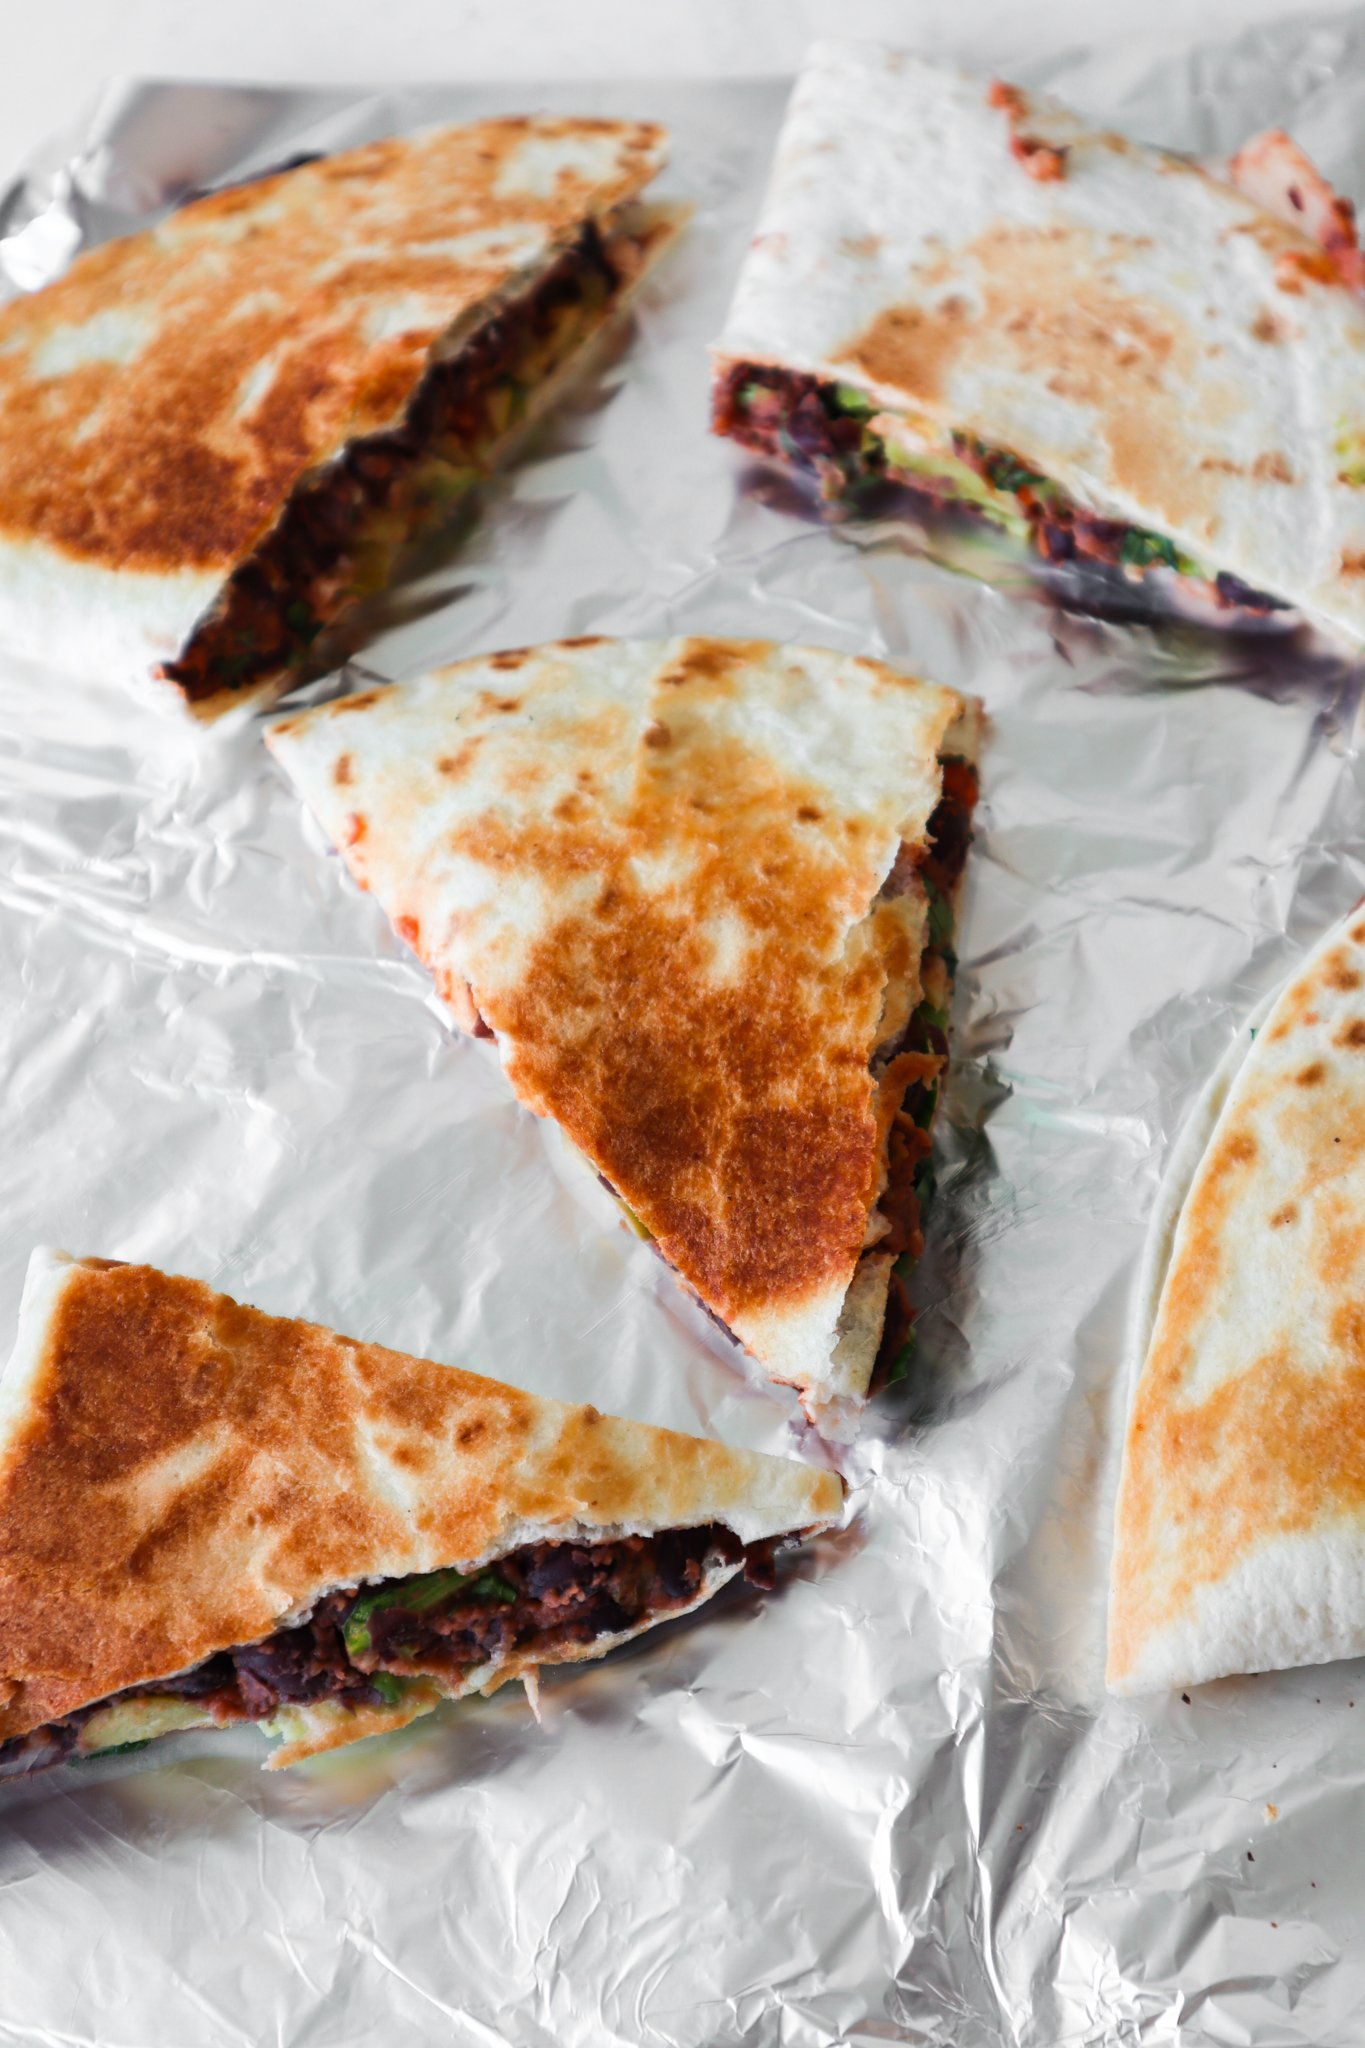 This avocado black bean quesadilla is a delicious meatless dinner recipe that you can make in 10 minutes